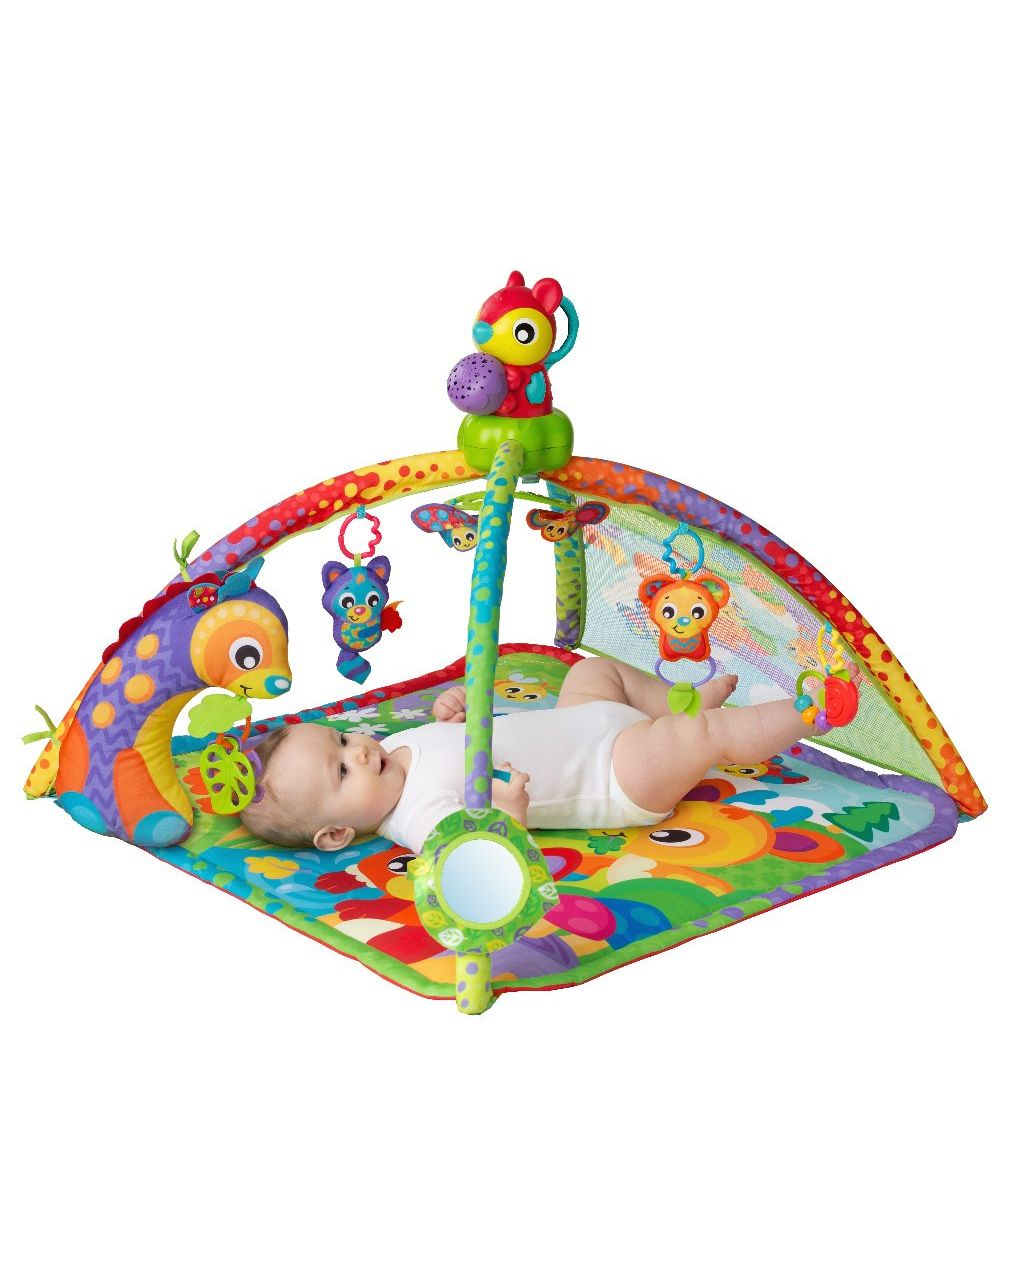 Playgro - woodland music and light projector gym - Playgro